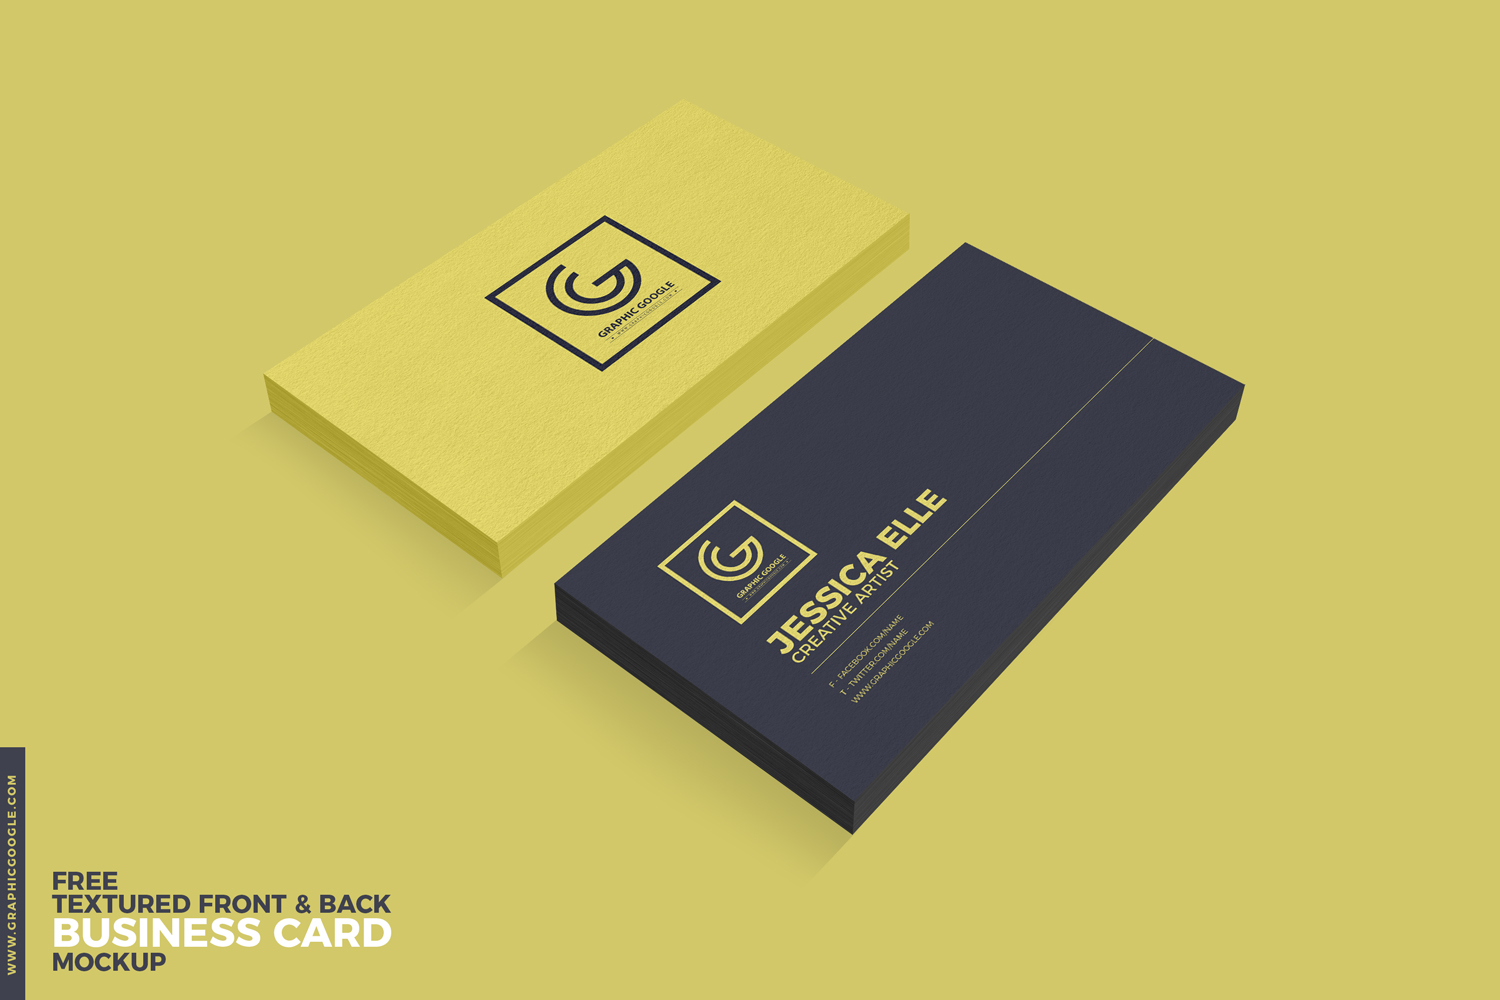 Free Textured Front & Back Business Card Mockup